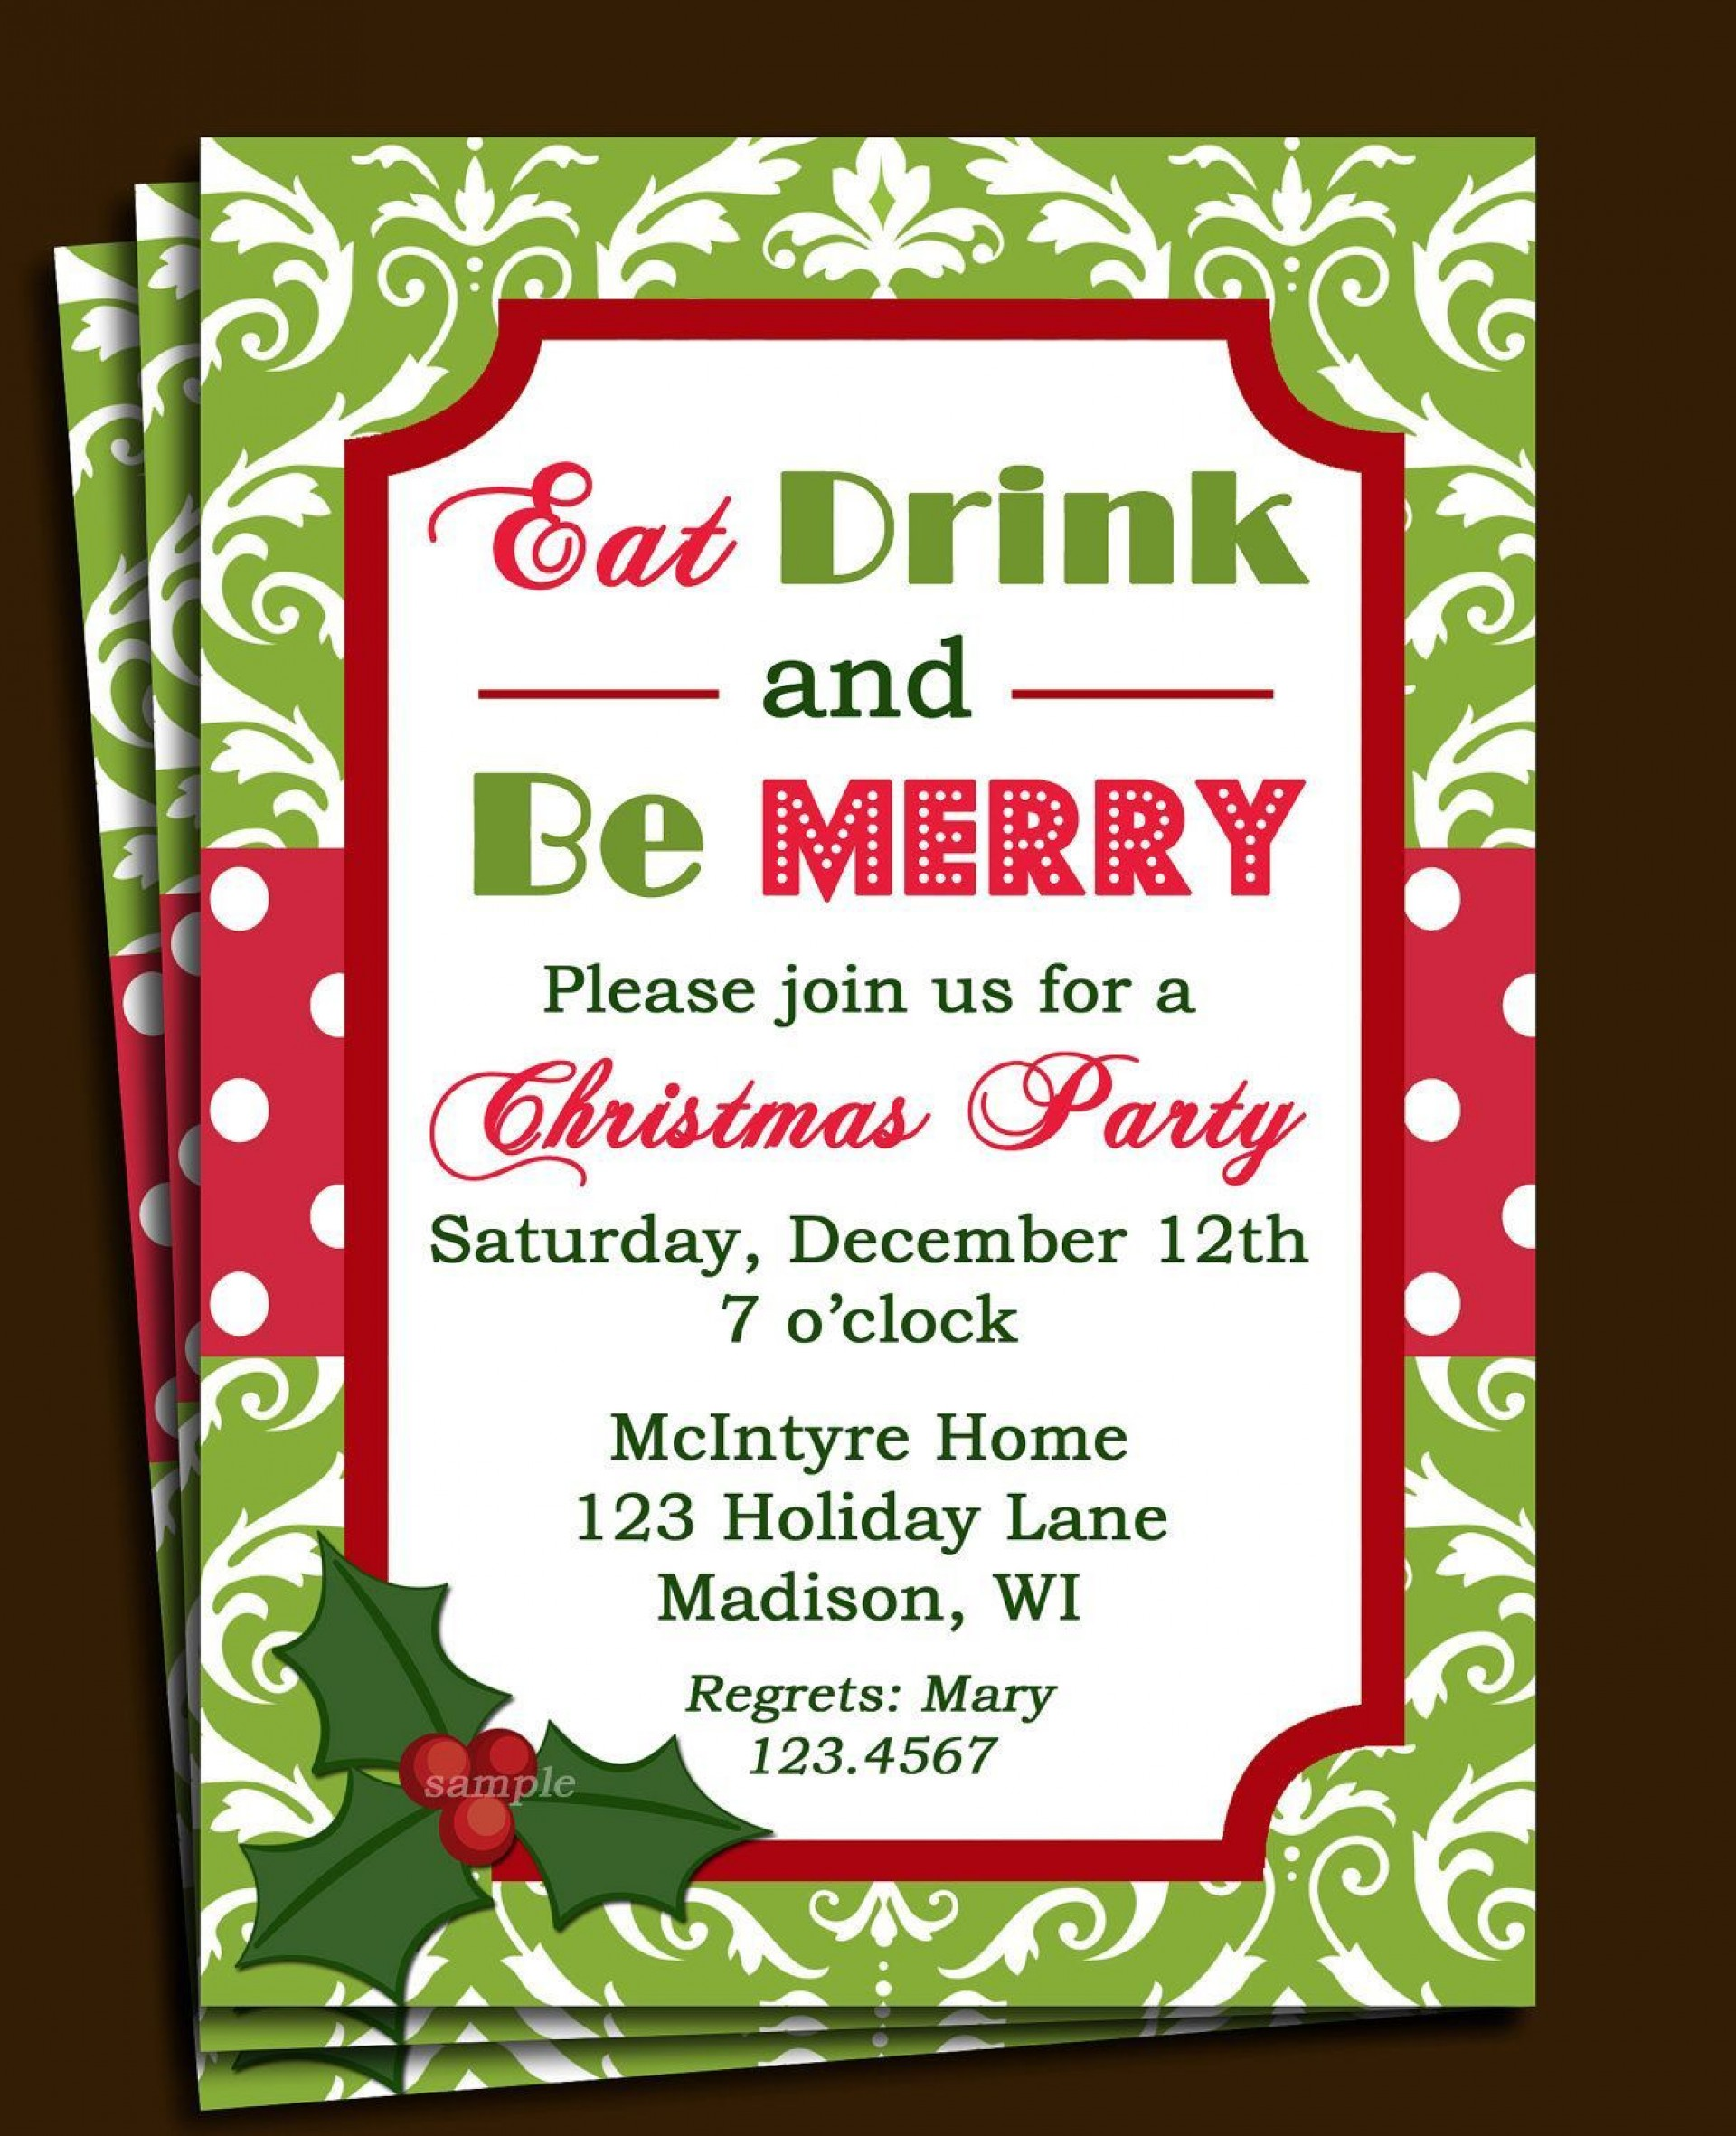 009 Best Christma Party Invite Template Word High Def  Holiday Free Invitation Wording Example1920